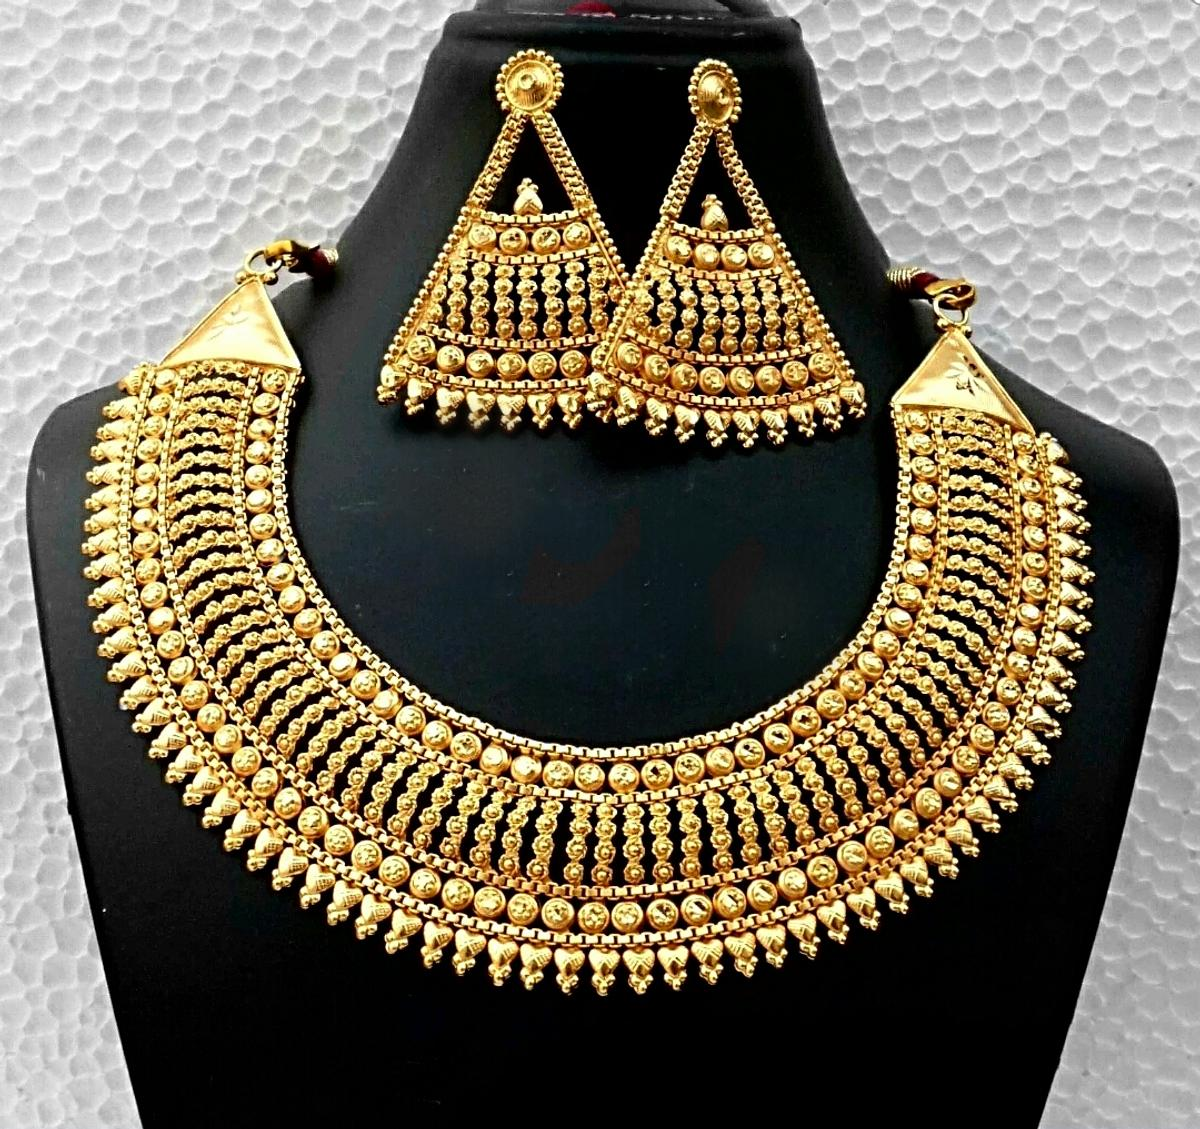 New22ct Indian Pakistani Asian Jewellery Set In M32 Trafford For